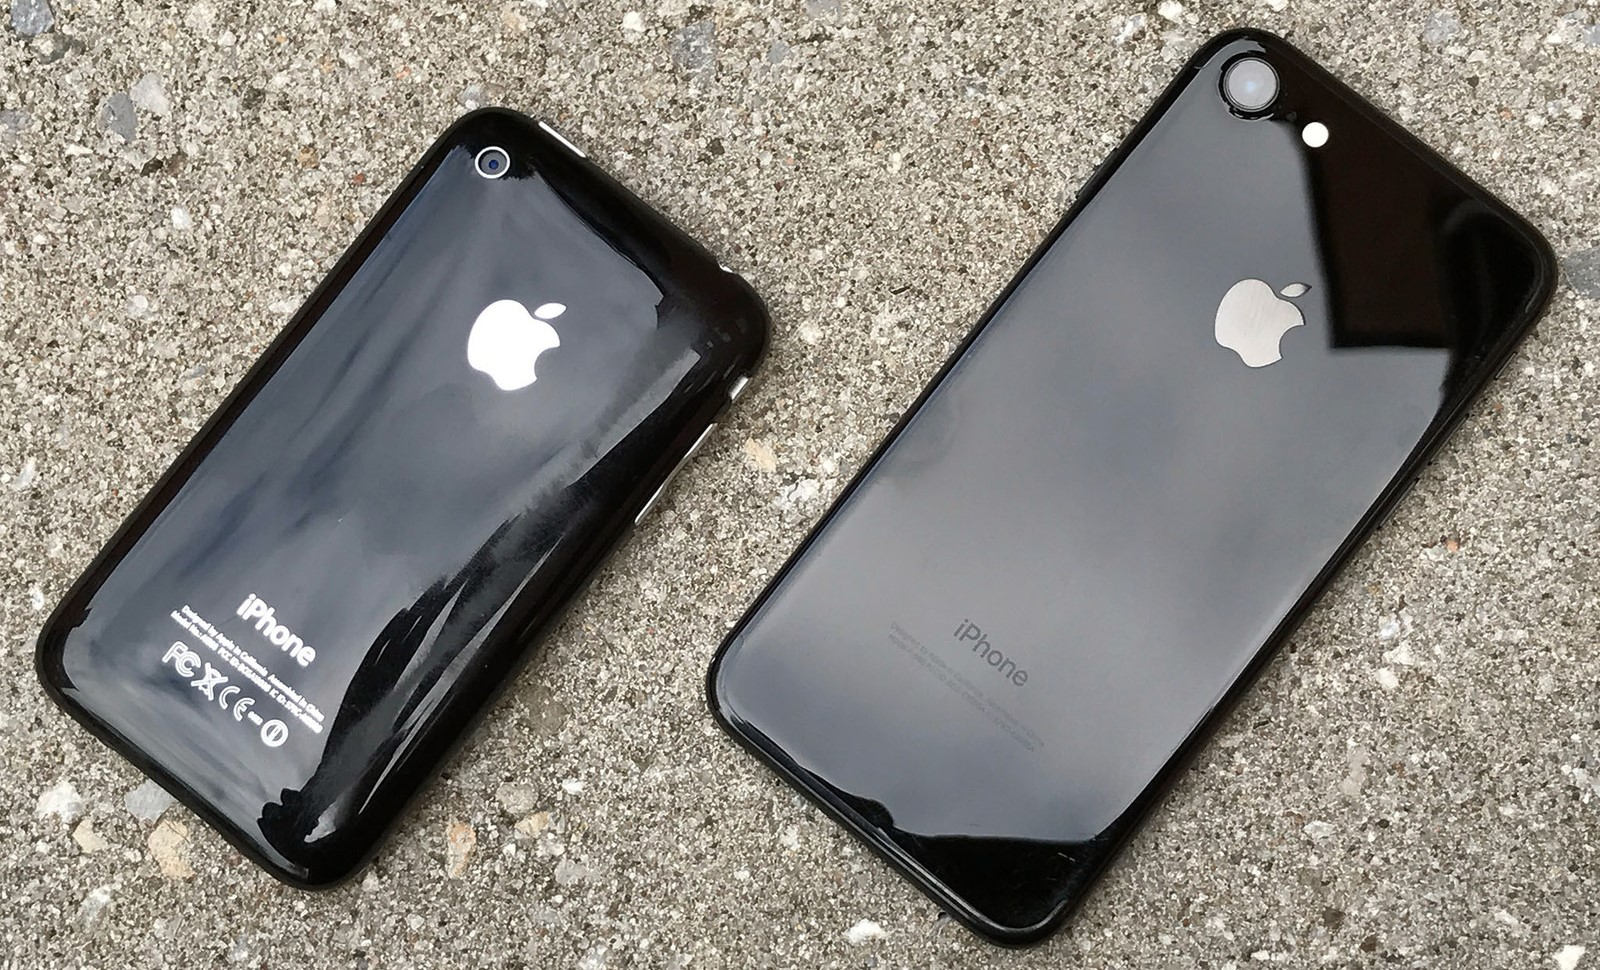 What is Apple Hiding in iPhone 7 Sales?